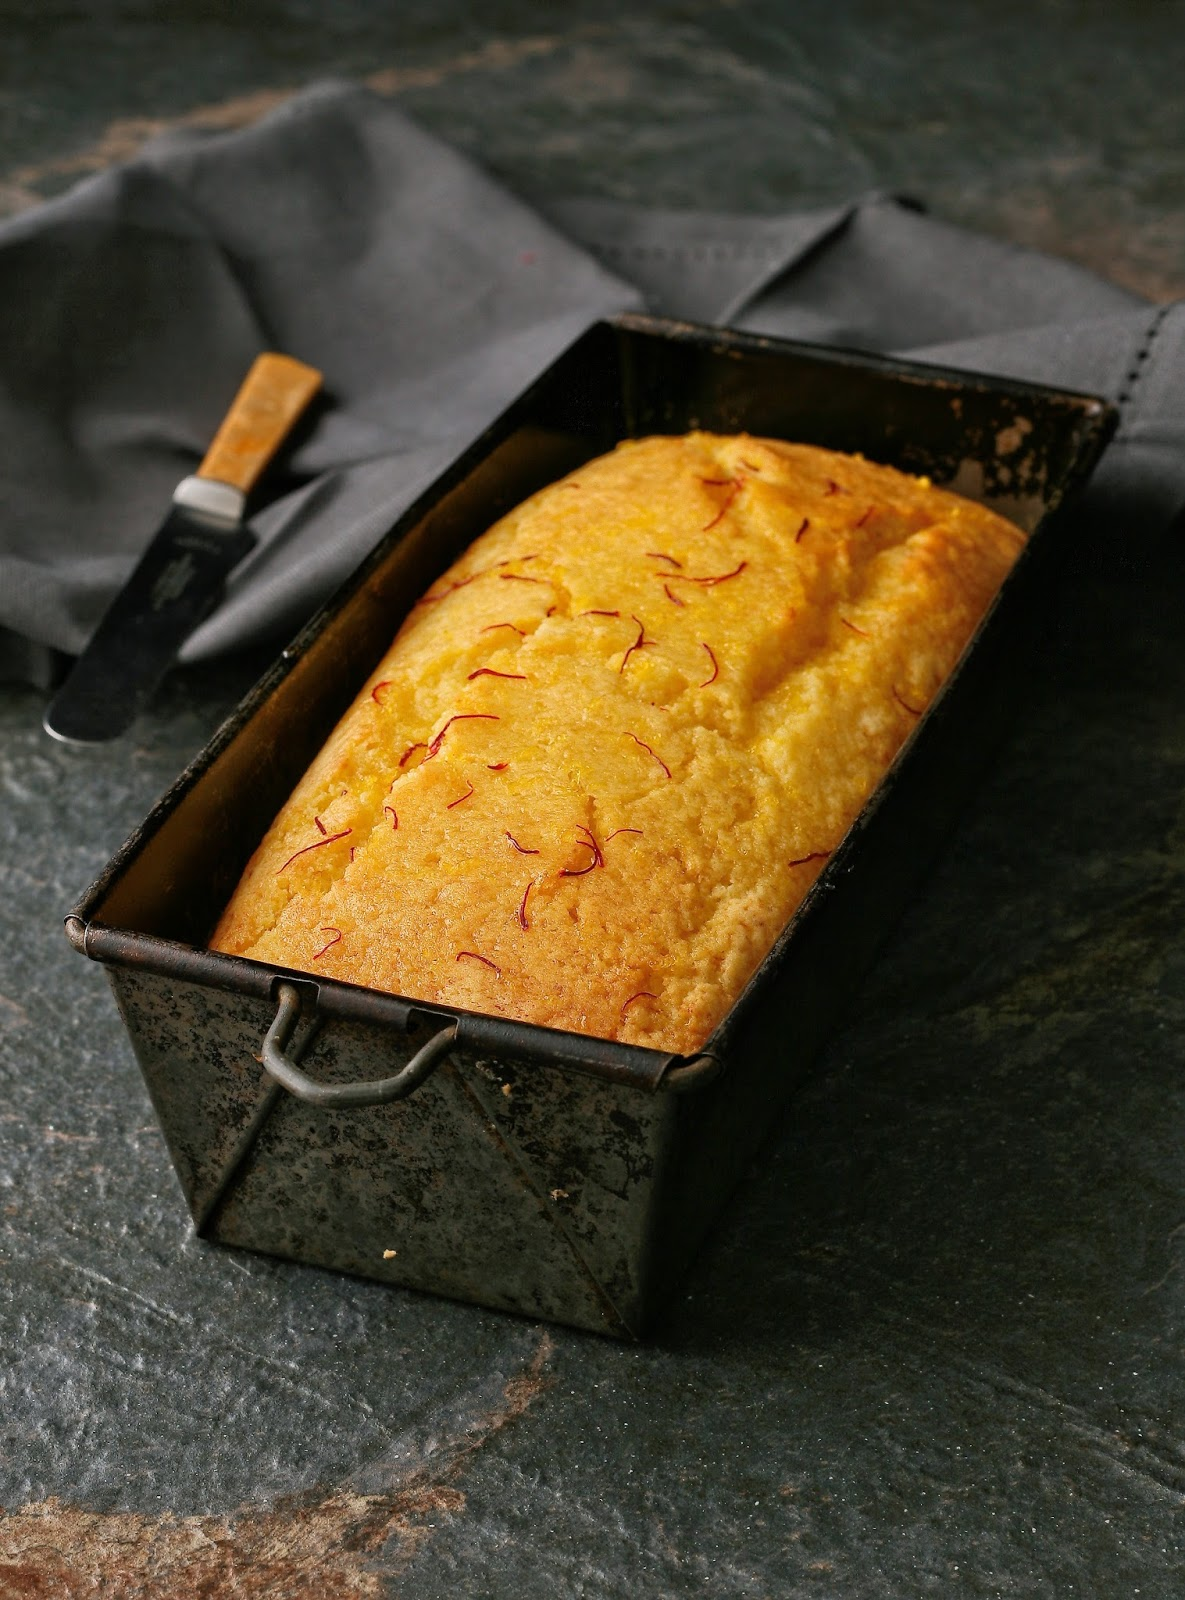 Lemon loaf cake with saffron syrup.